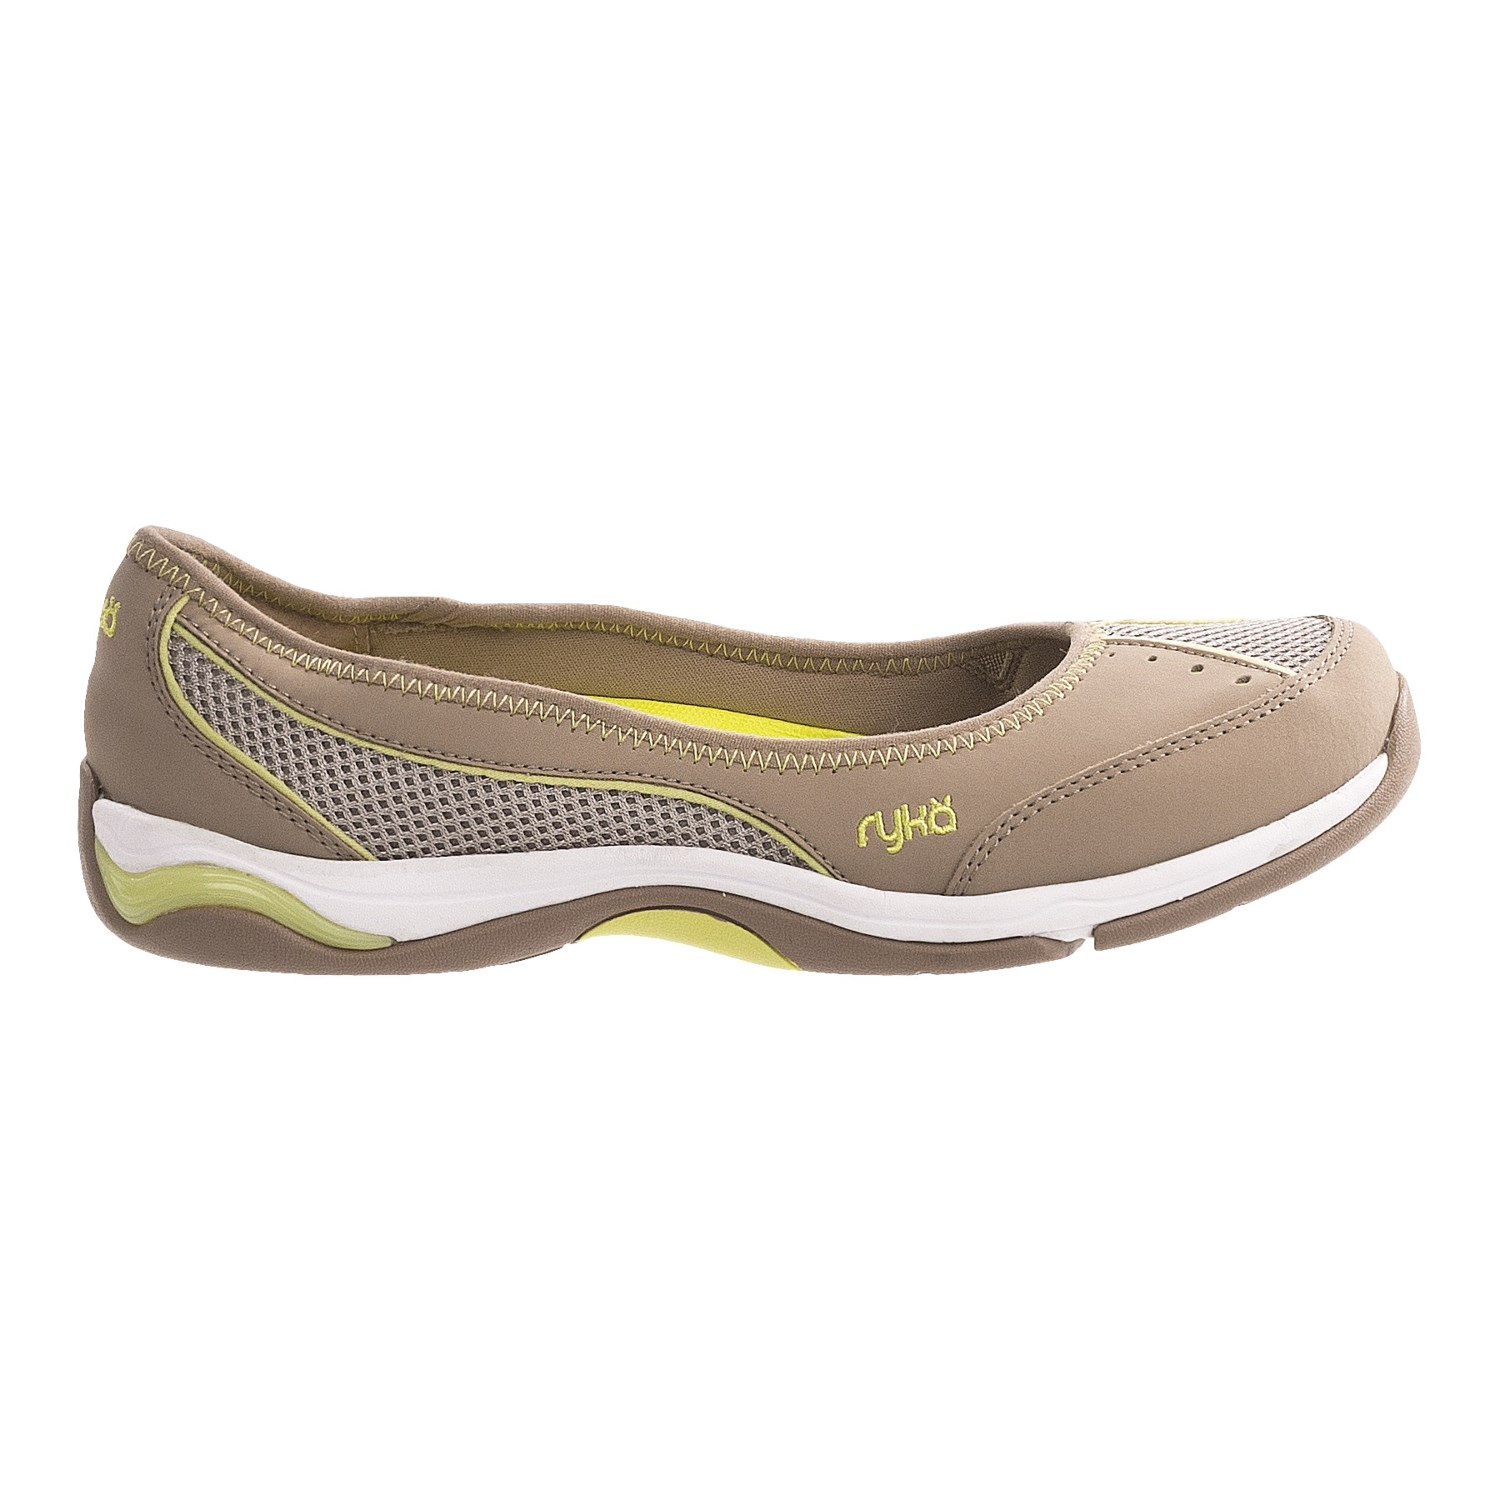 Ryka Tensile Ballet Shoes (For Women) 6873D